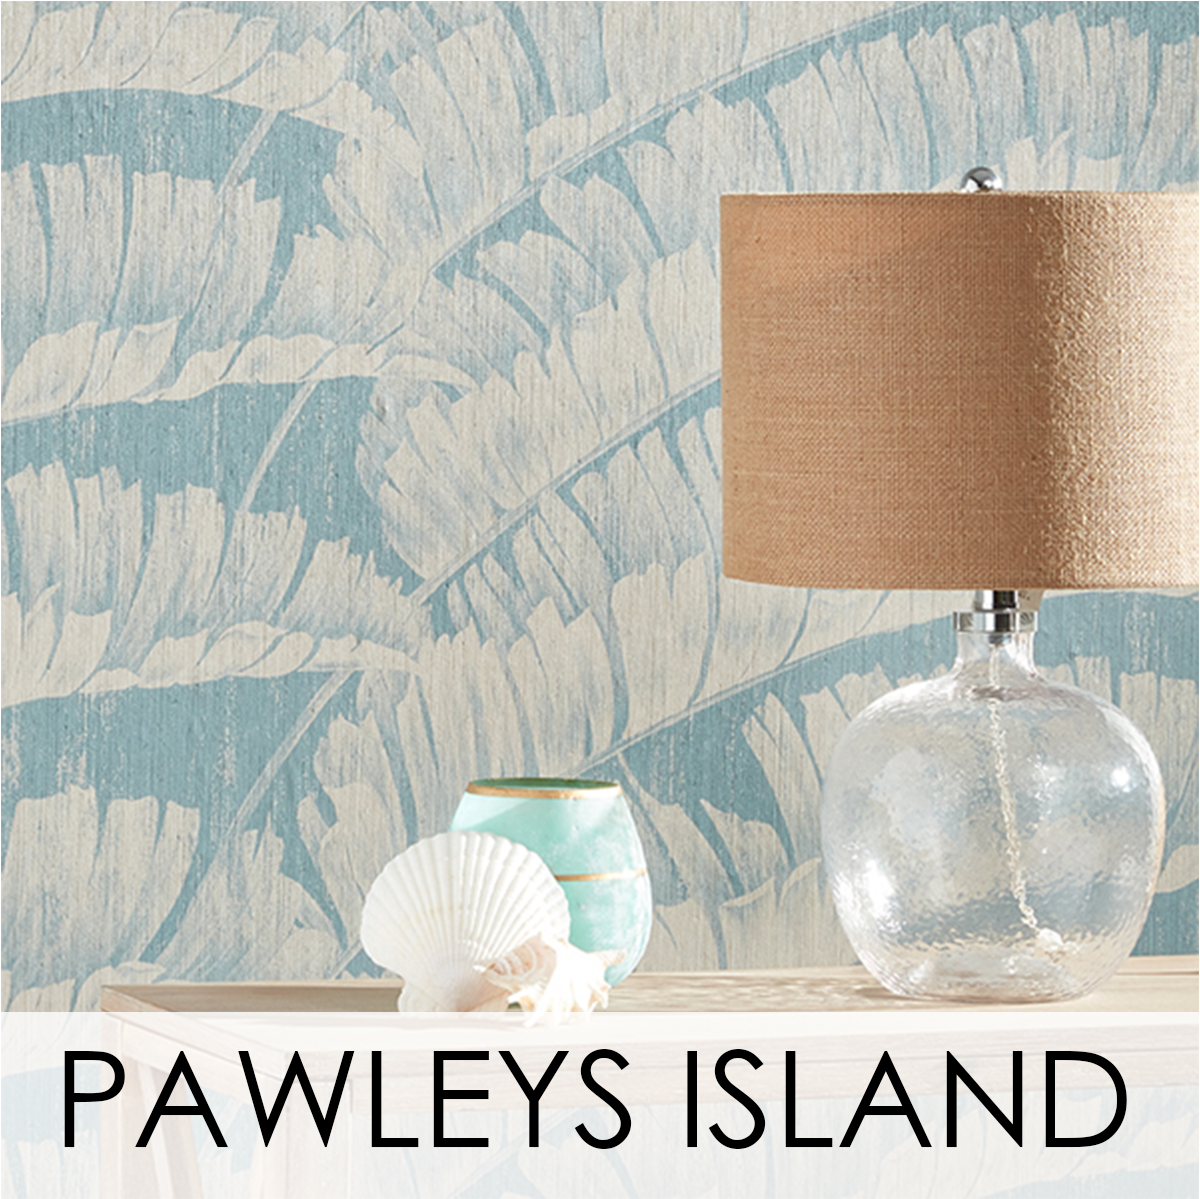 Pawley's Island Wallcovering from LEVEY